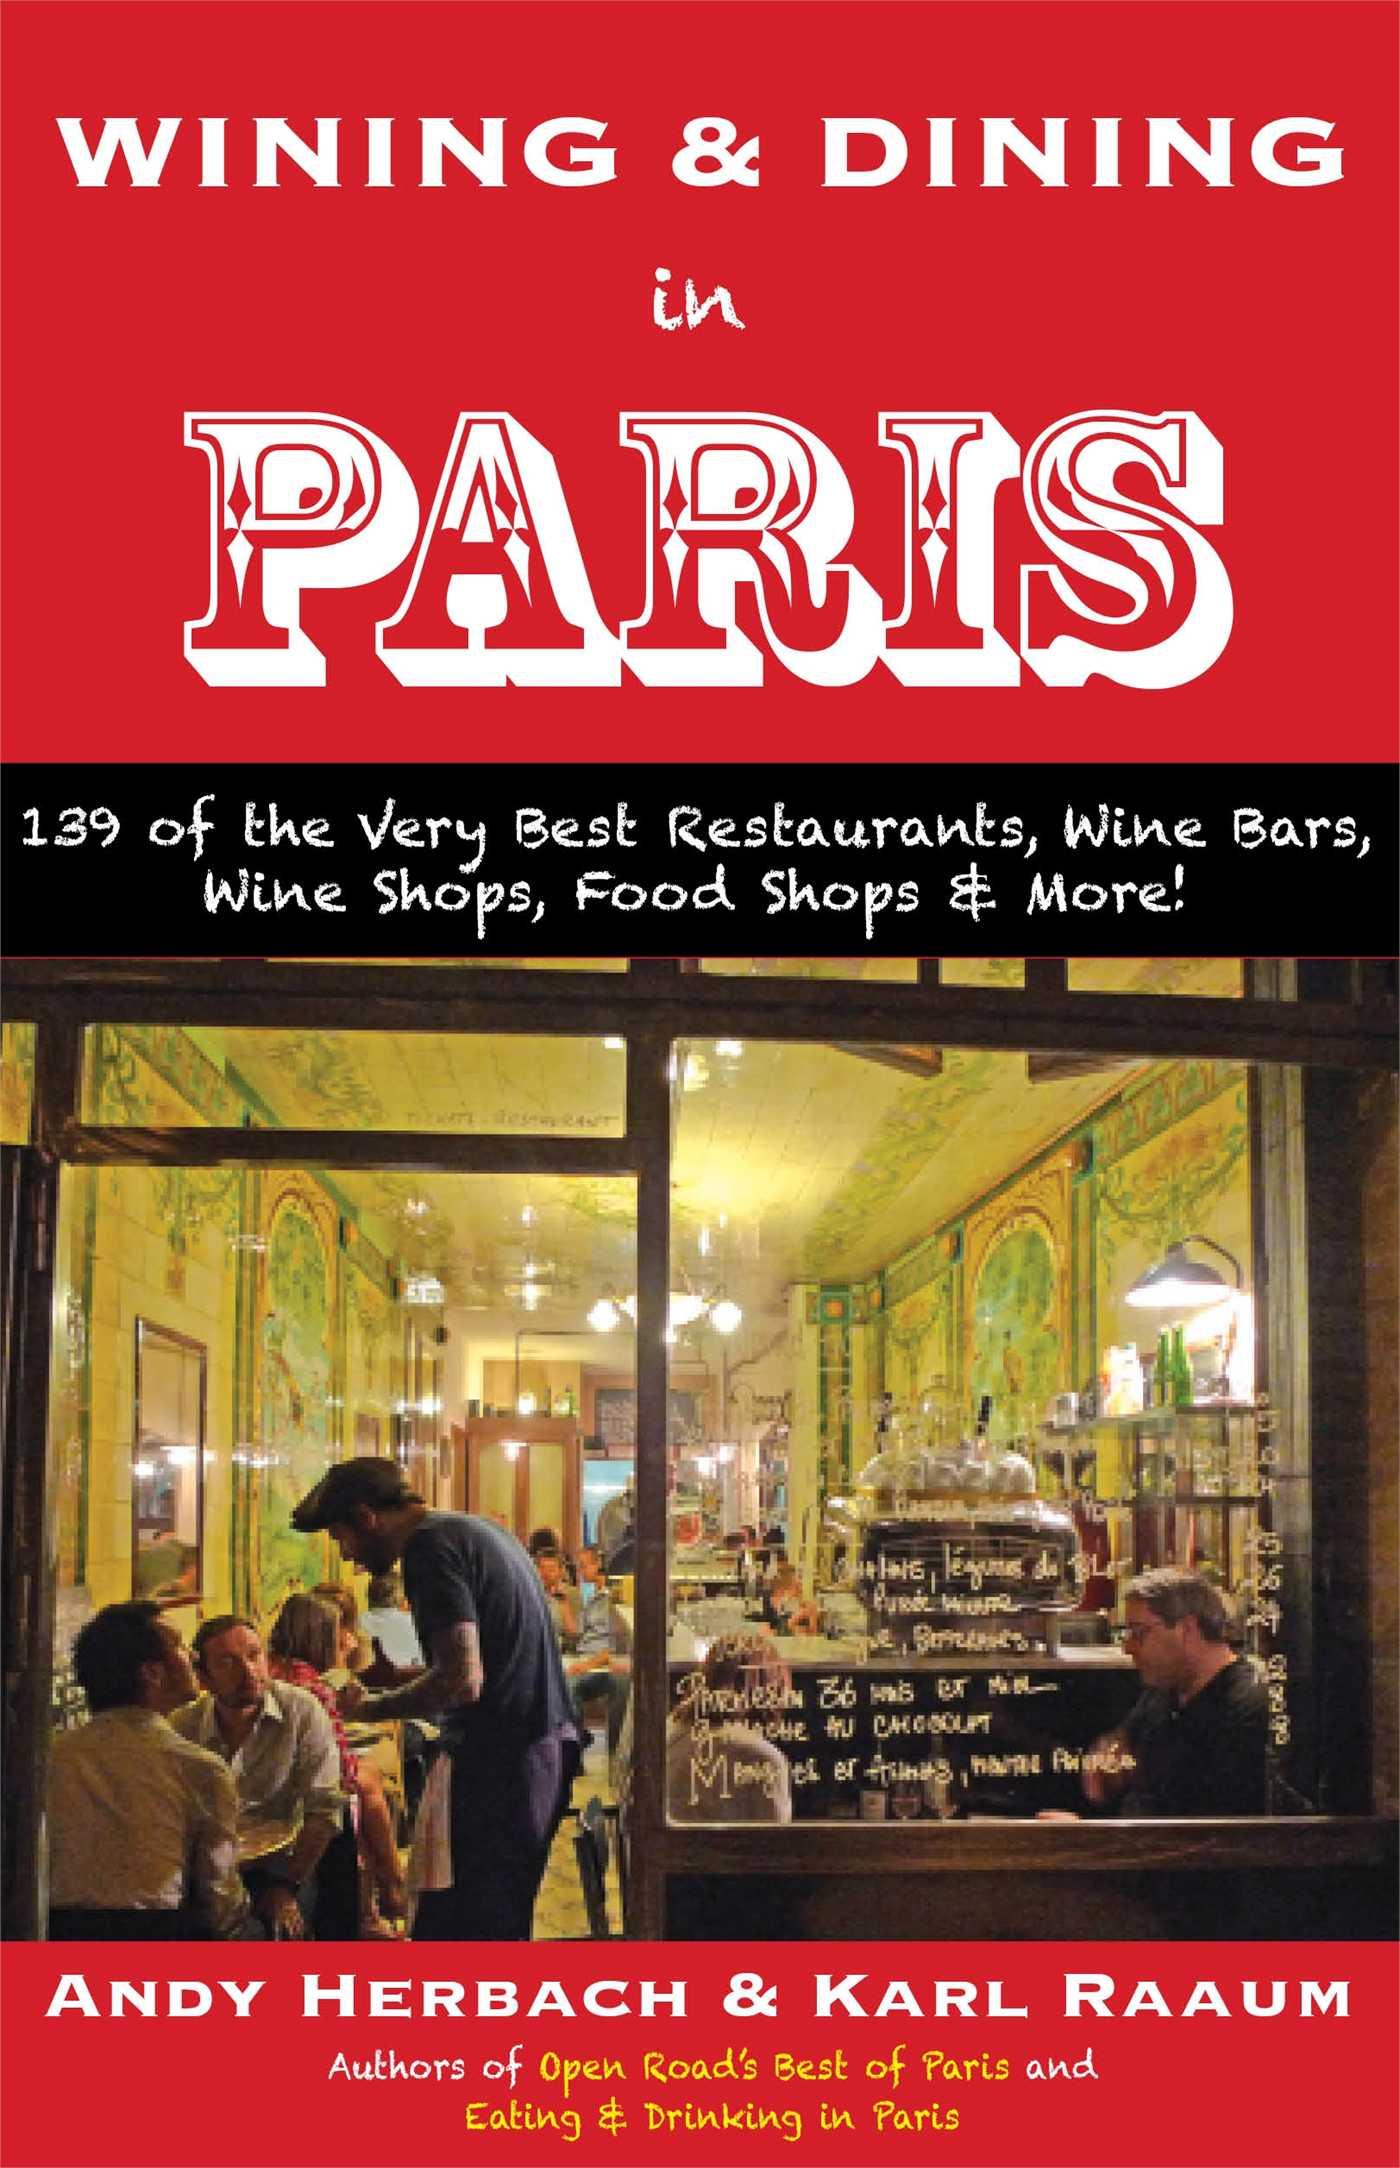 Wining-dining-in-paris-9781593601959_hr